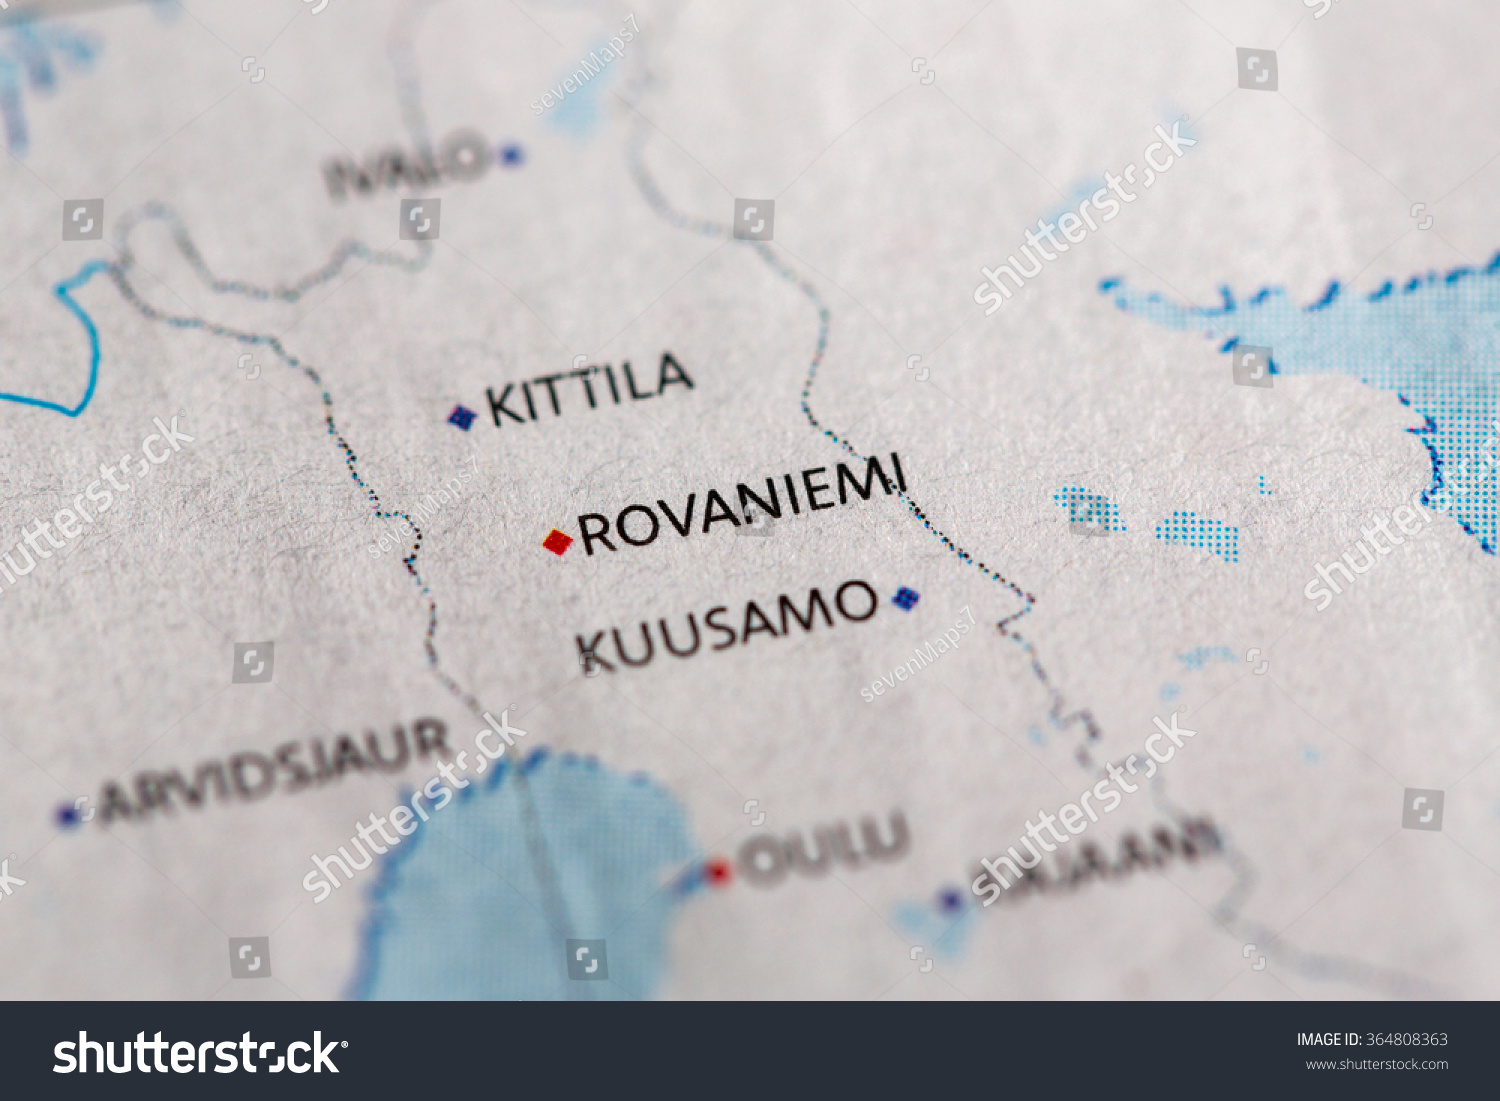 Closeup Rovaniemi Finland On Political Map Stock Photo Royalty Free